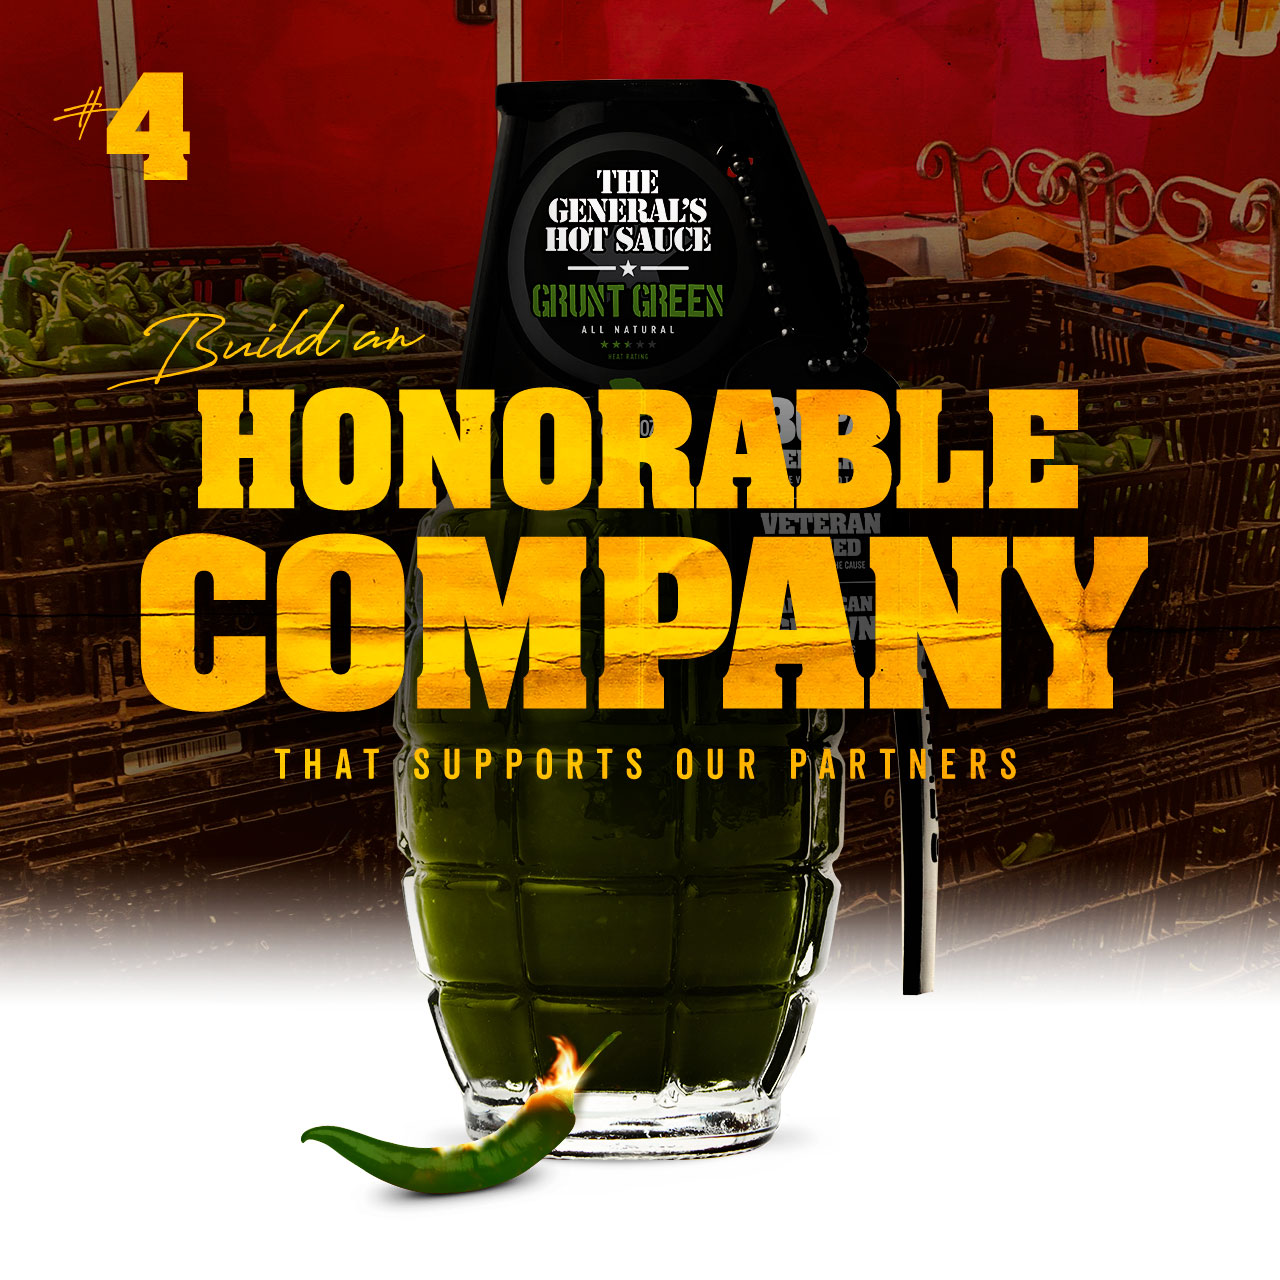 Build an honorable company that supports our partners